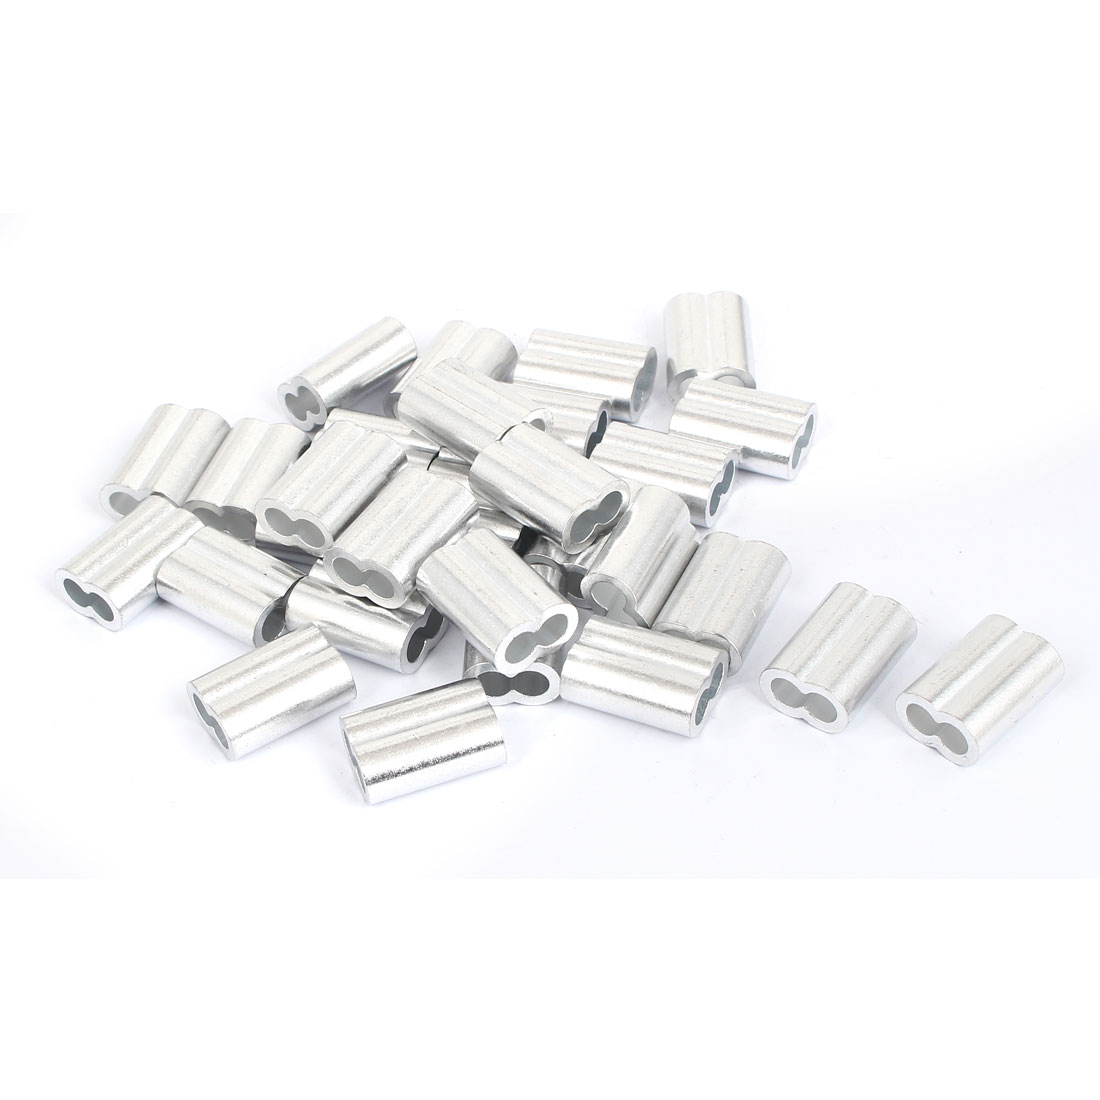 "Double Hole Aluminum Sleeves Silver Tone 30 Pcs for 1/4"" Wire Rope"